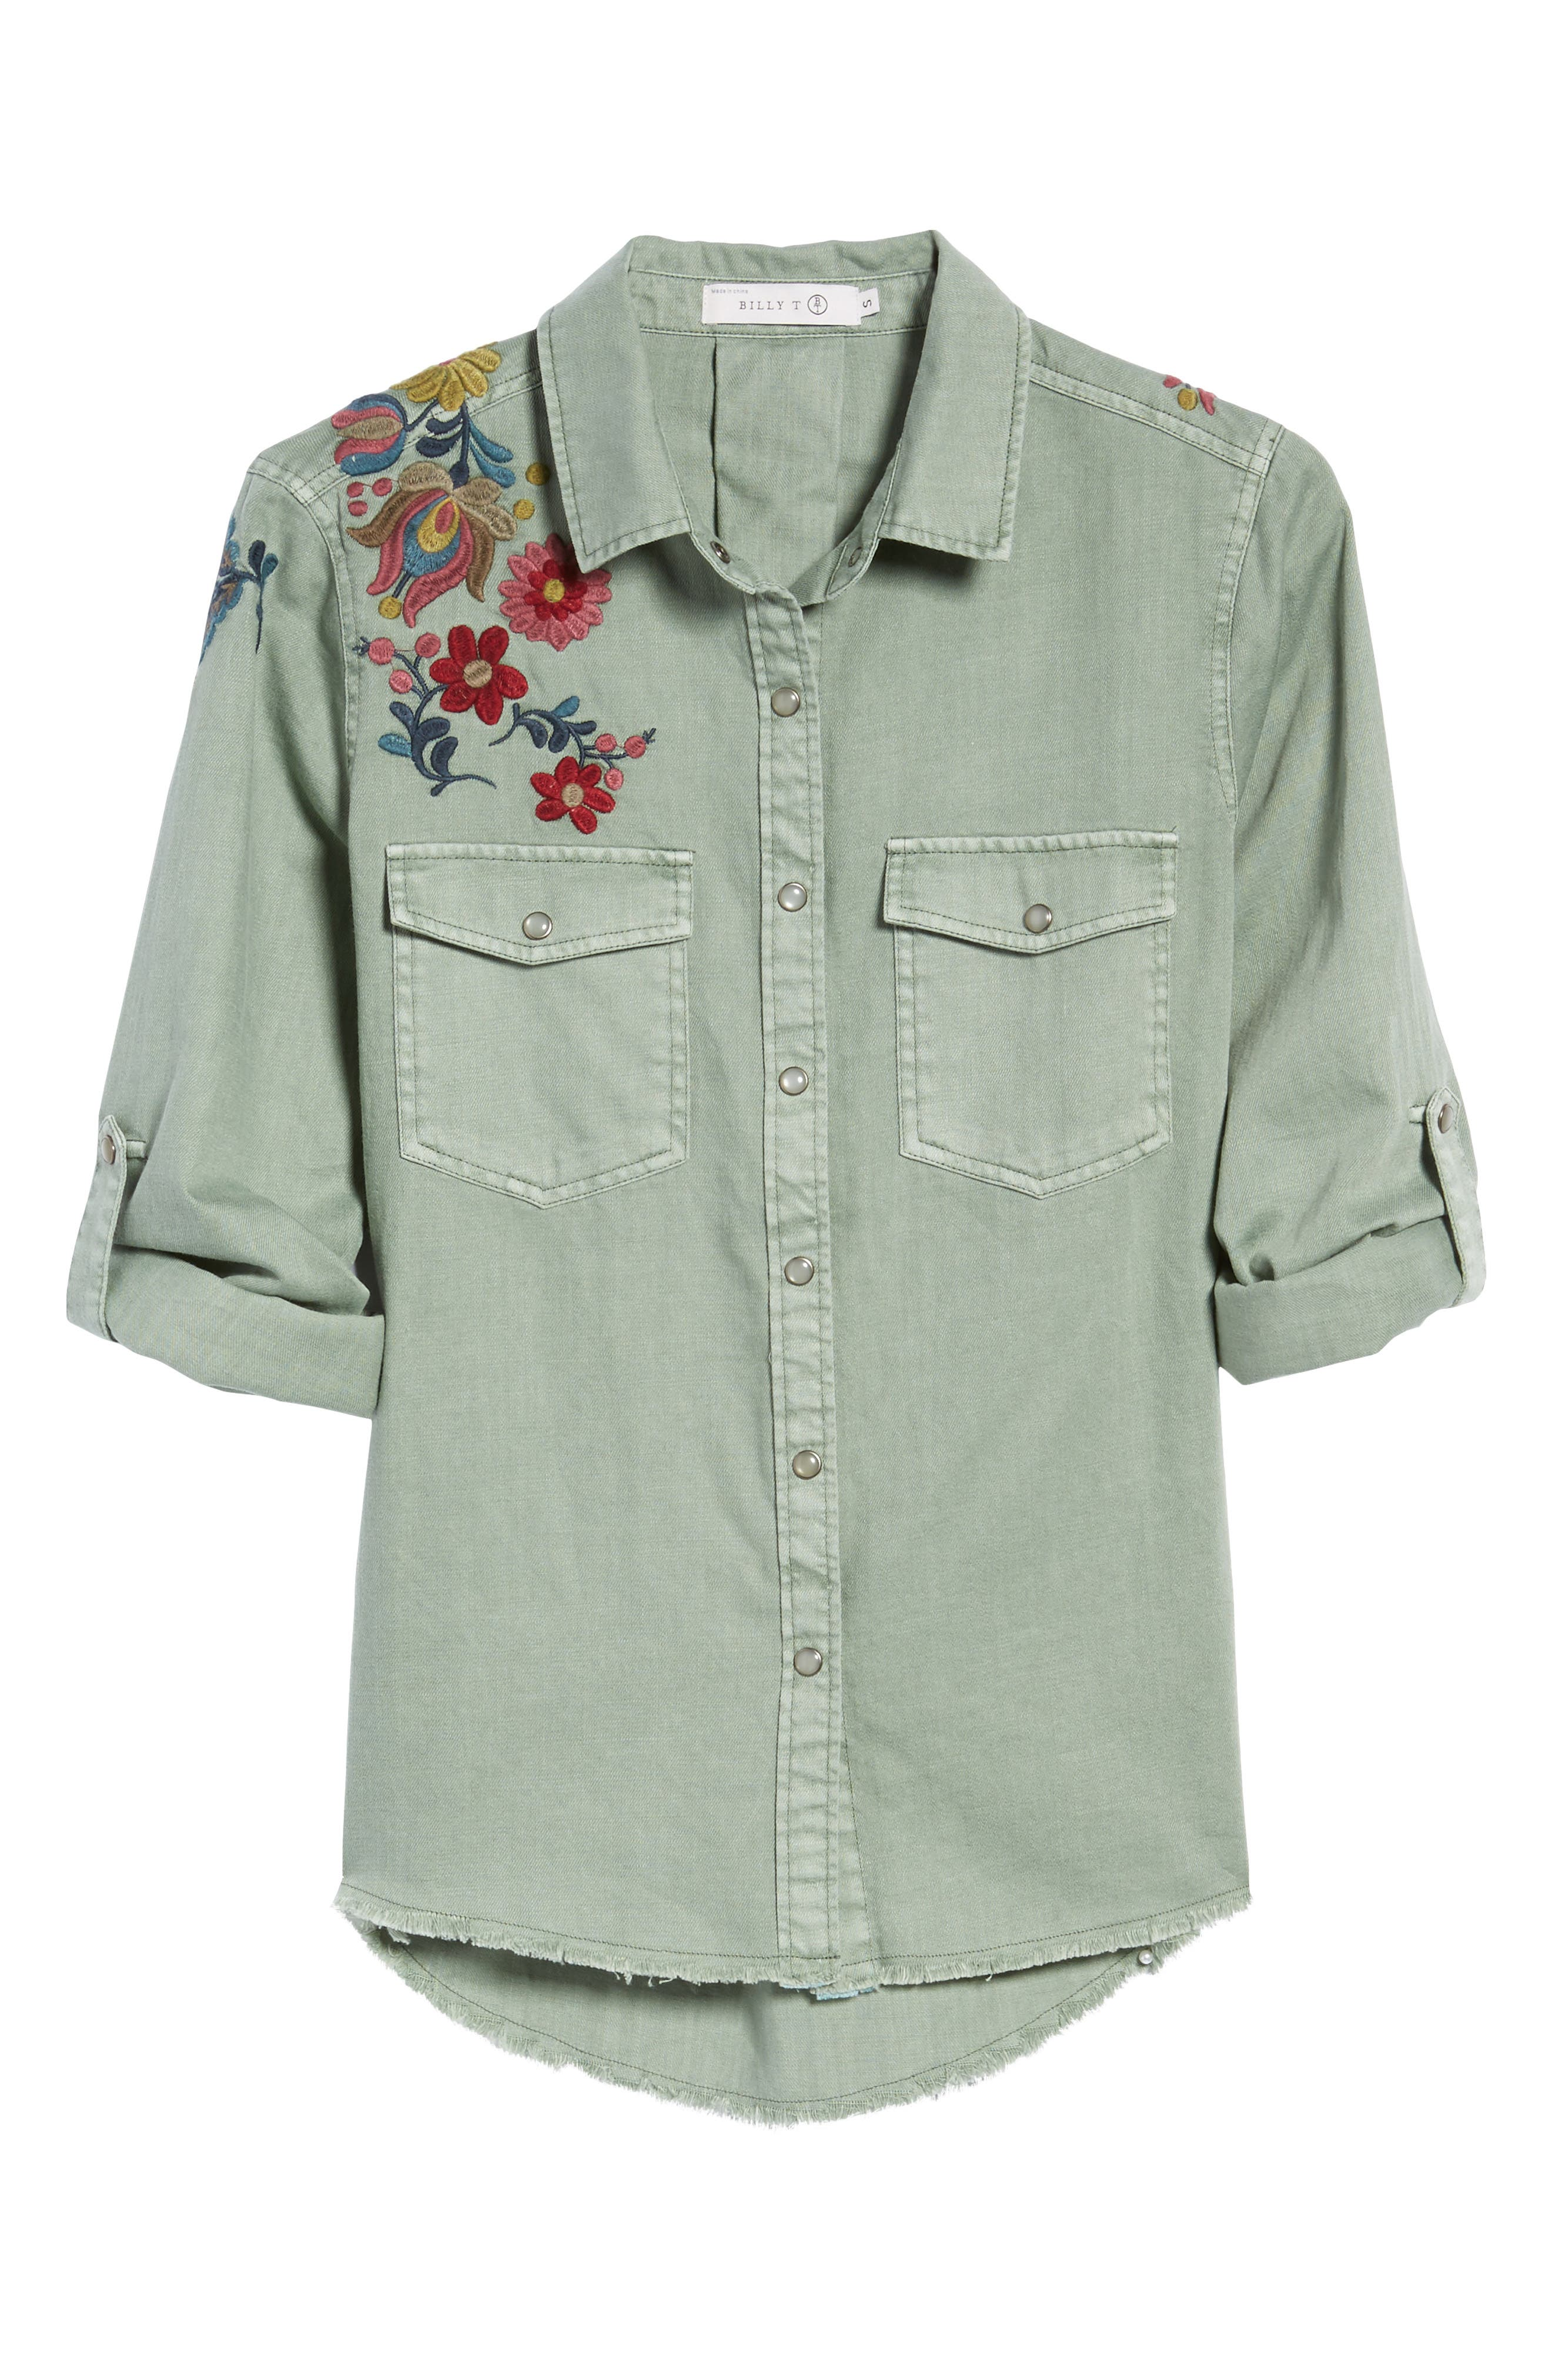 Roll Sleeve Embroidered Shirt,                             Alternate thumbnail 6, color,                             301